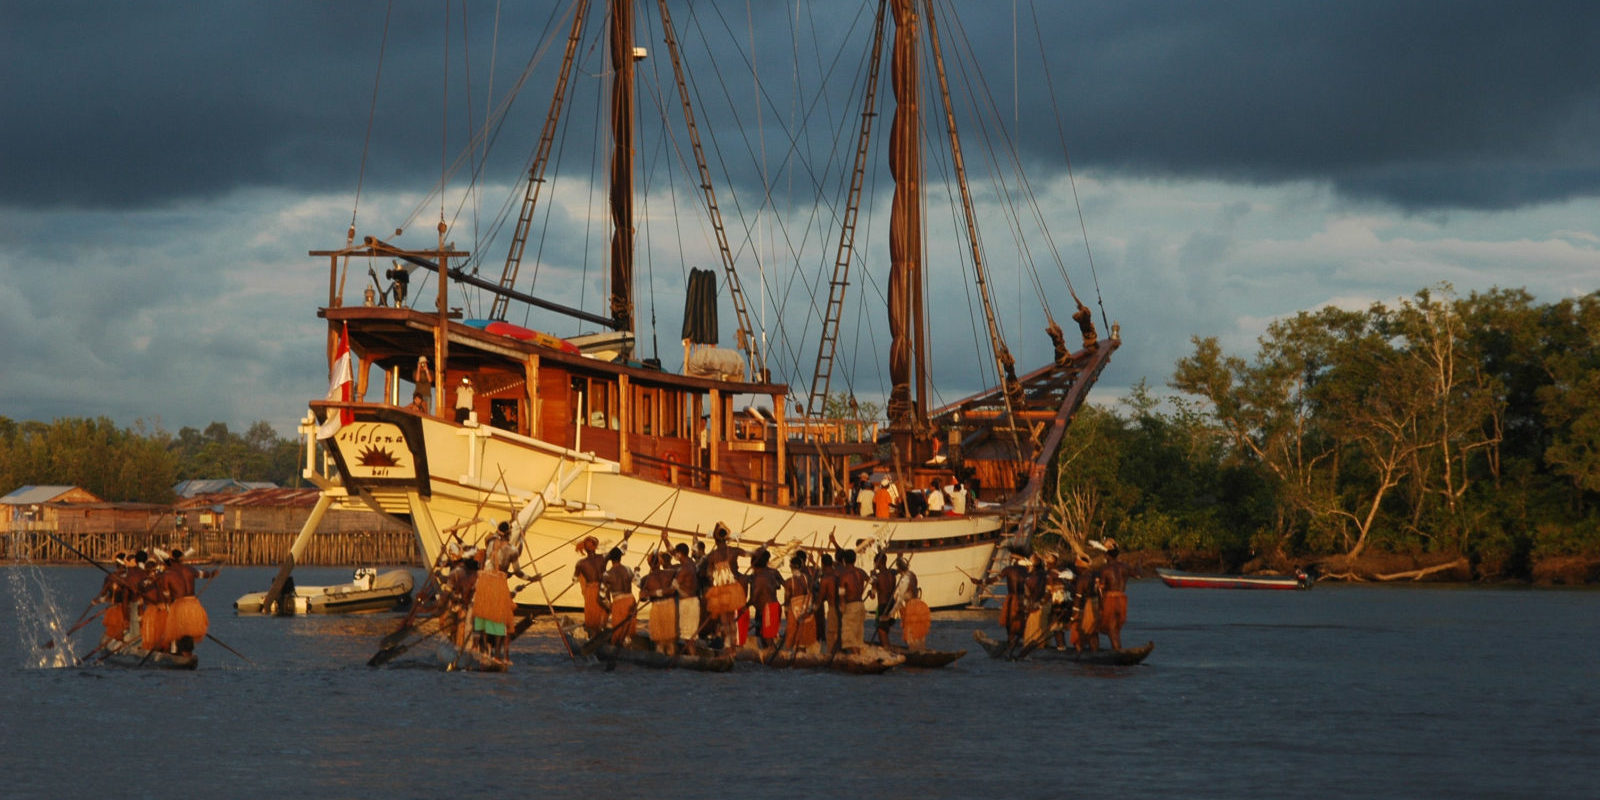 Papua, Asmat regency; a fleet of Asmat canoes with warriors in traditional dress  greets Silolona on arrival at Syuru village, Agats